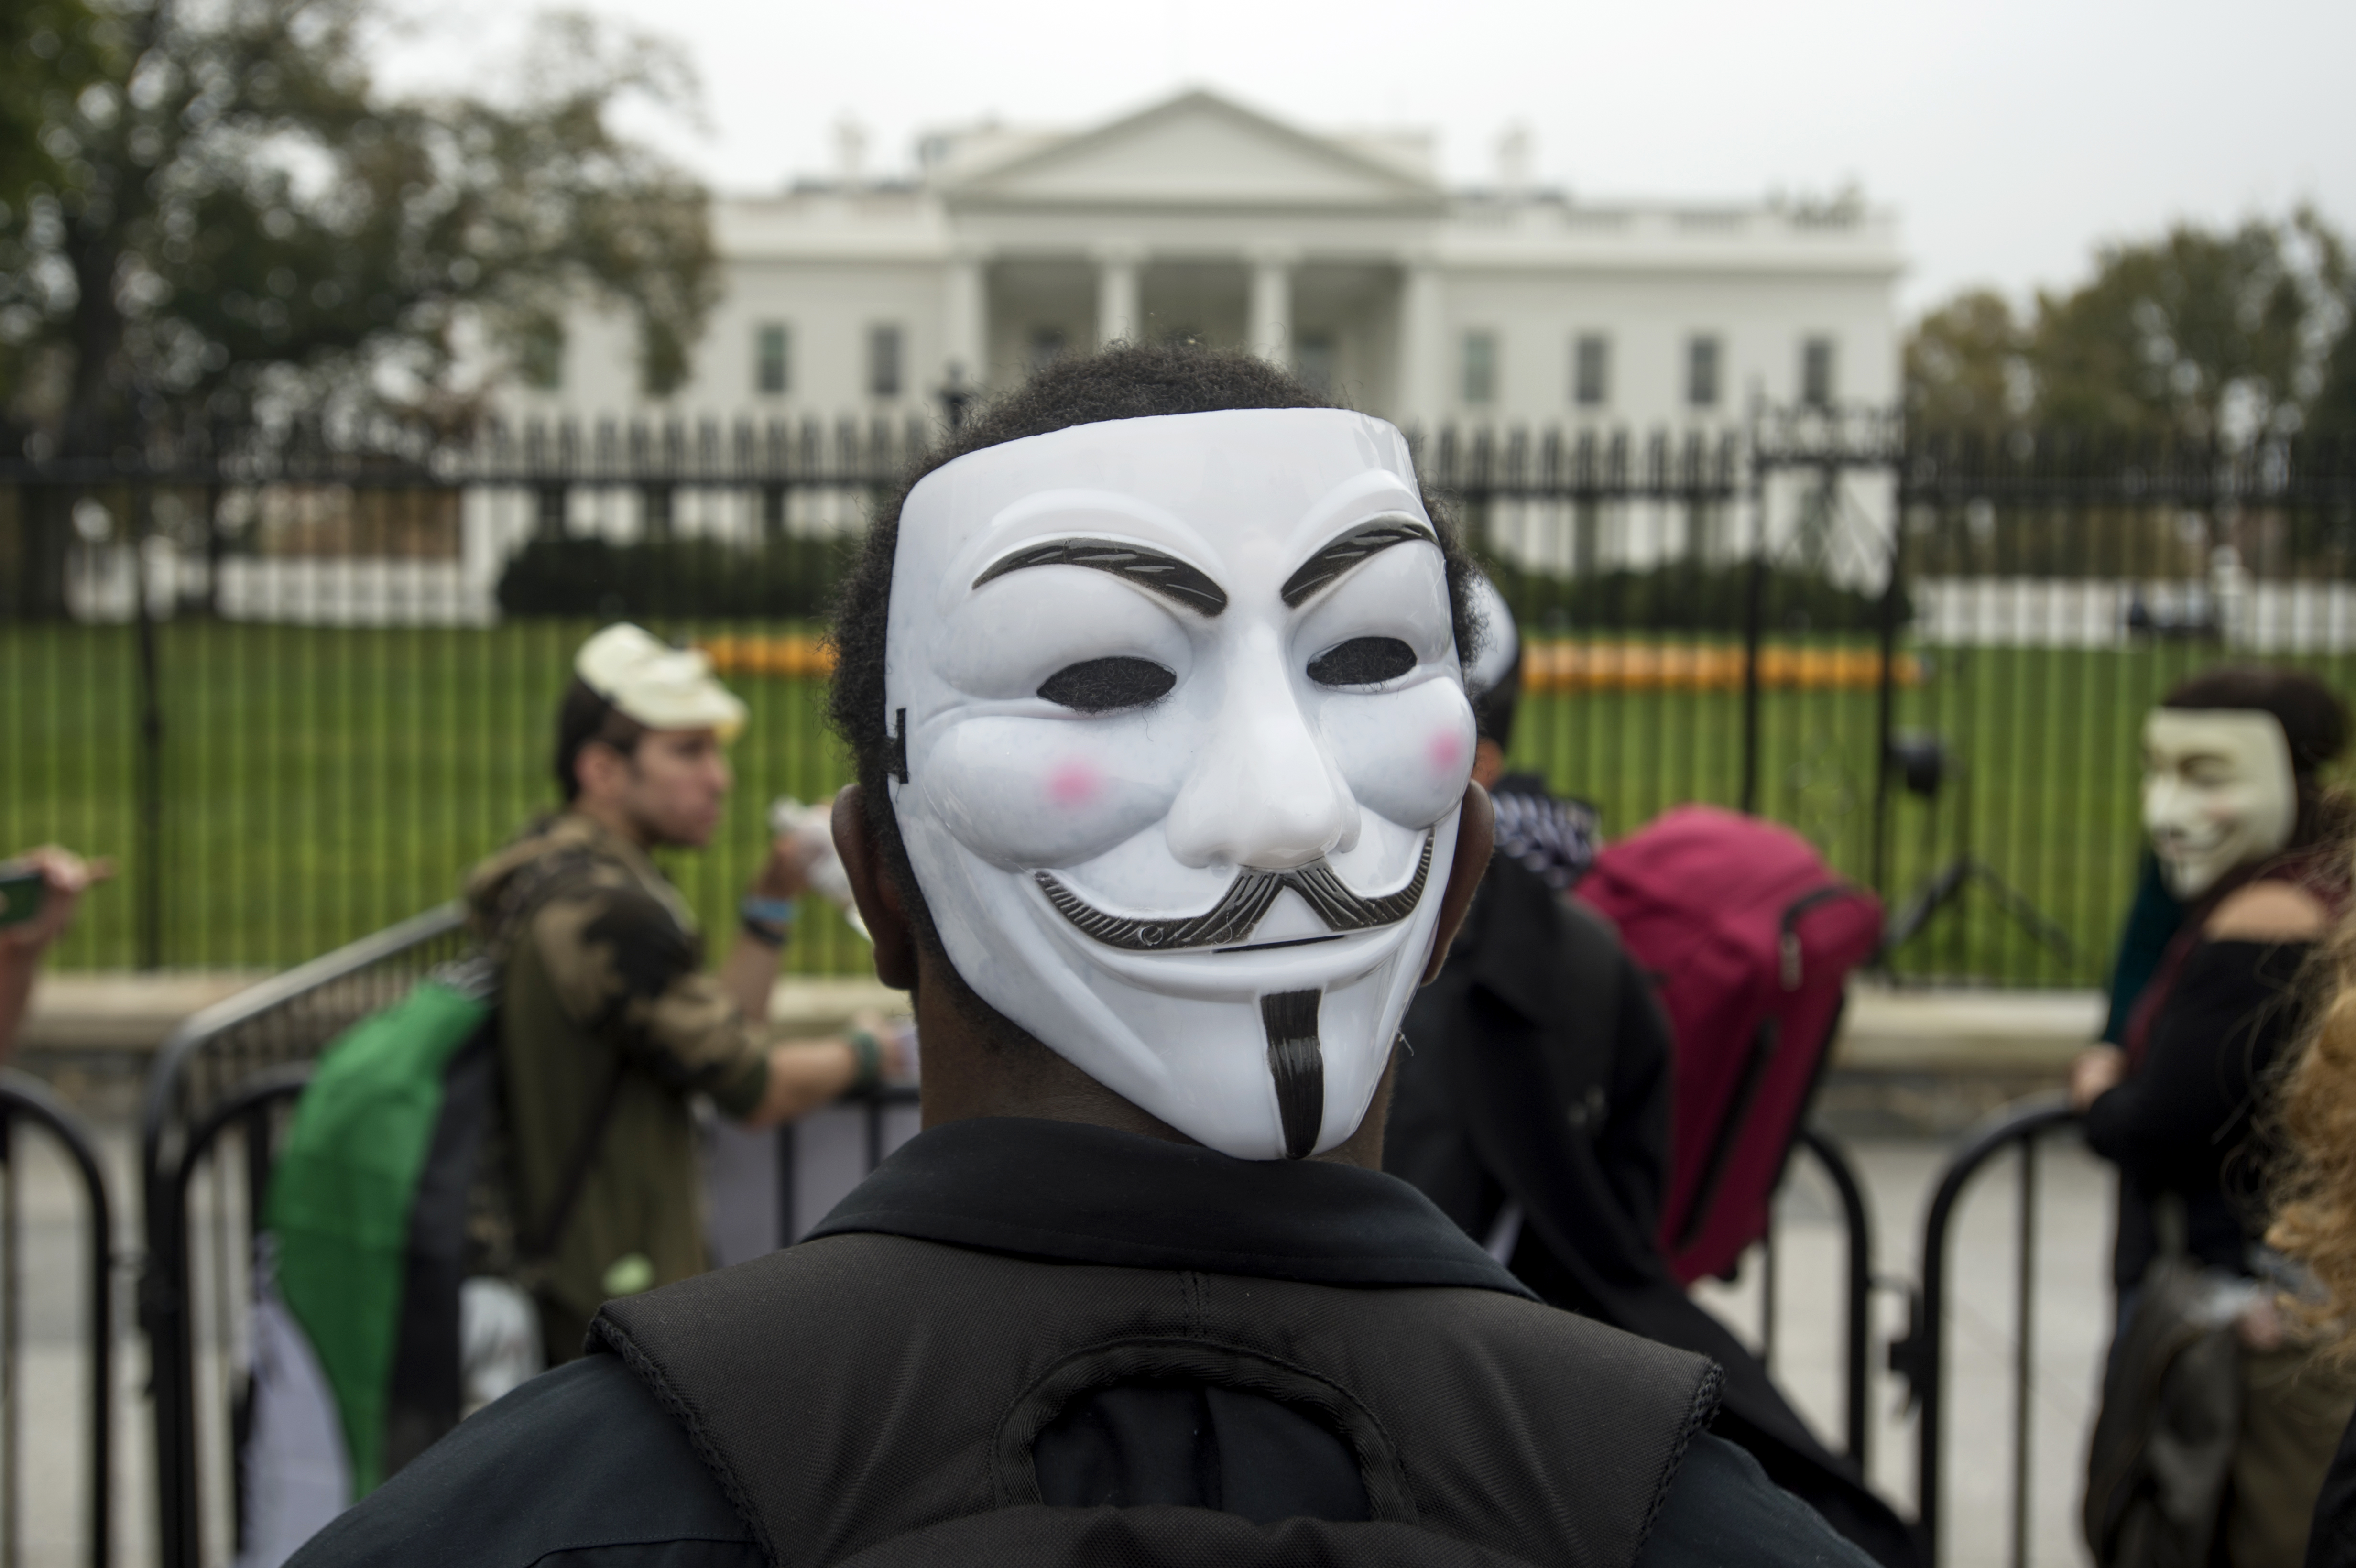 A youth wears a mask on the back of his head while attending a rally outside the White House in Washington, DC, Nov. 5 2015.